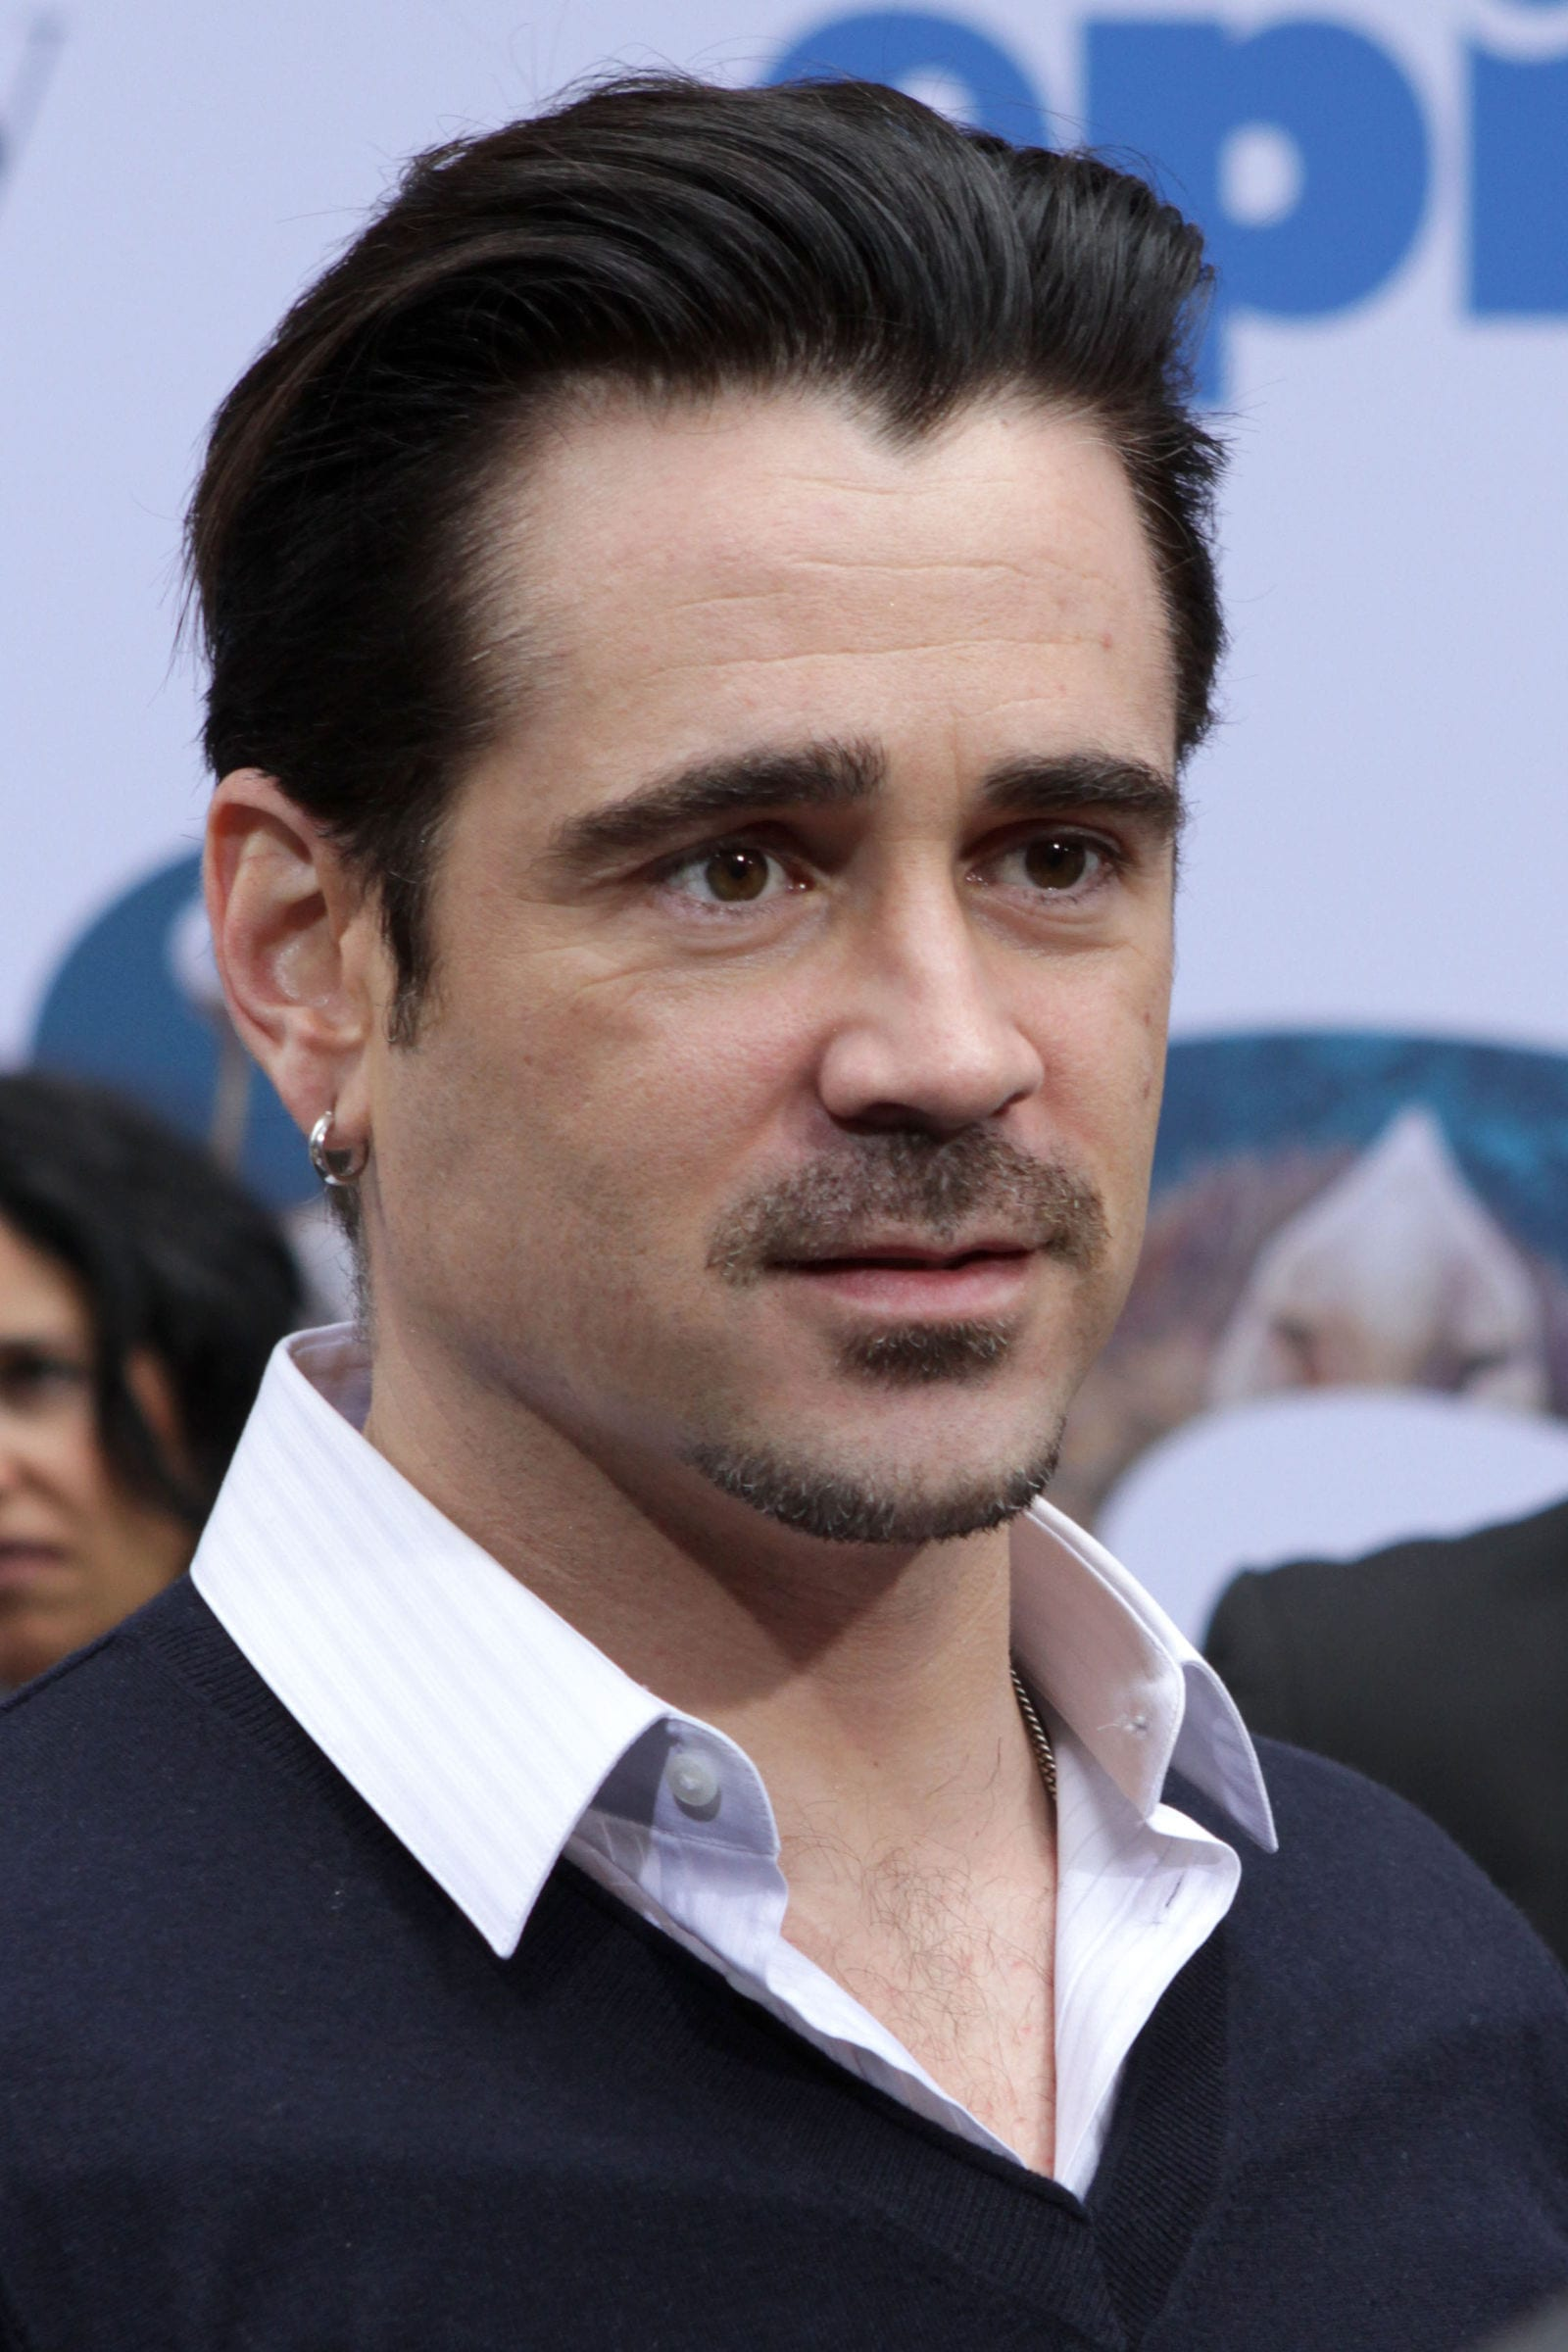 Colin Farrell window peak sweep back hairstyle quiff JStone